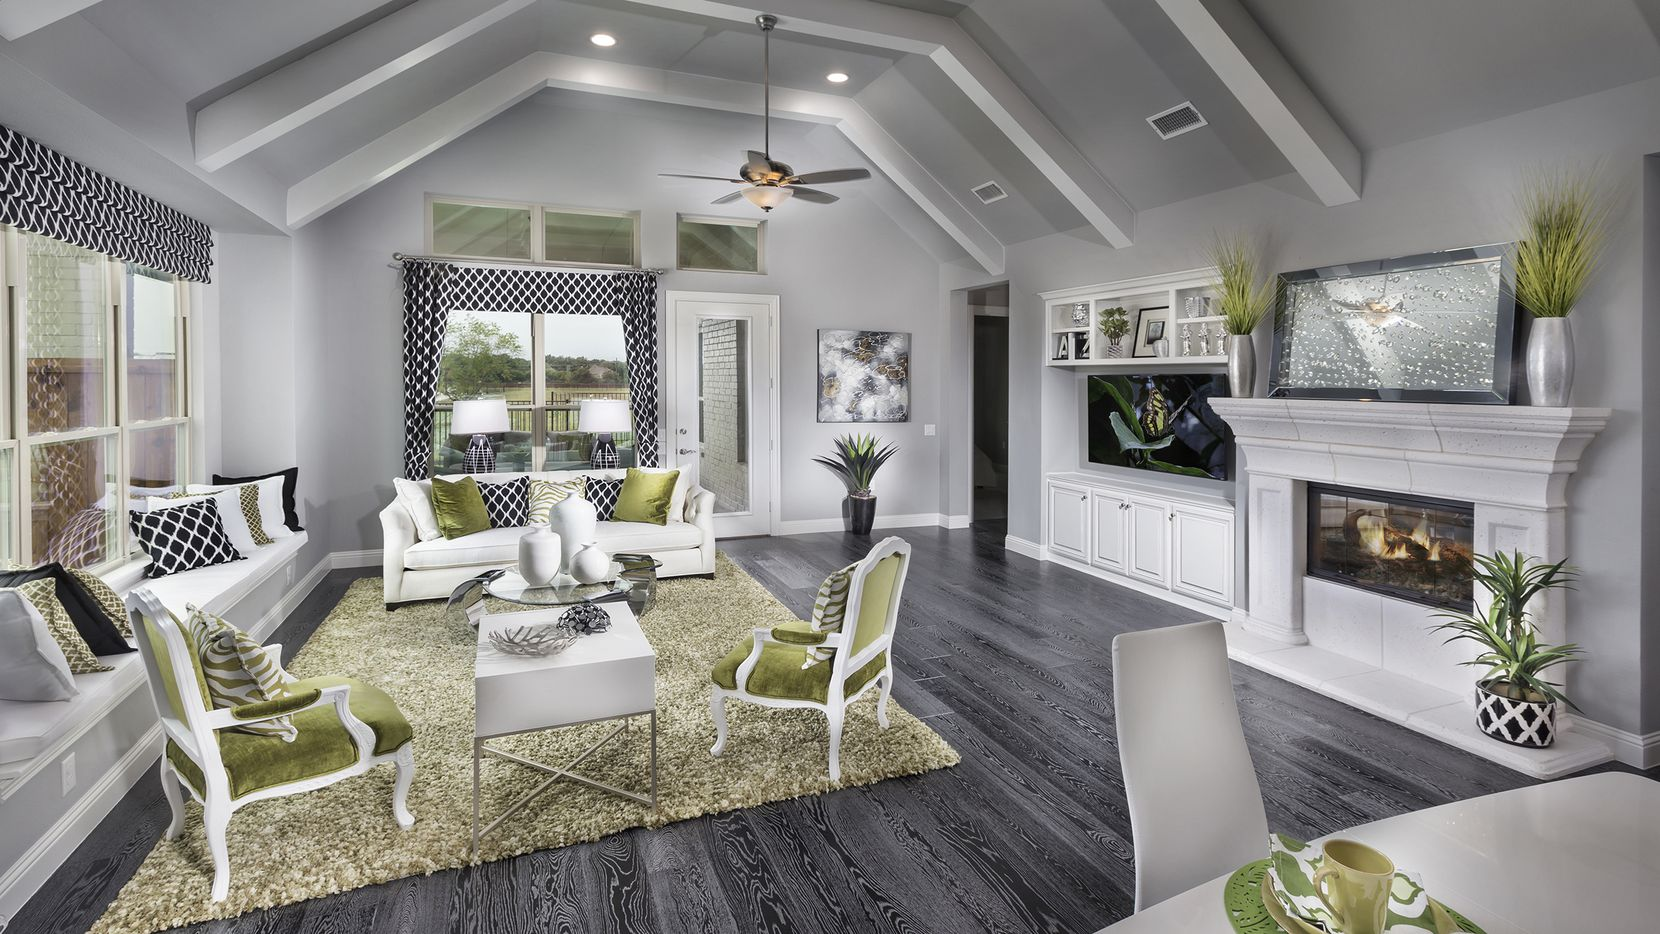 Buying opportunities are dwindling in Orchard Flower, an award-winning 55-plus community featuring low-maintenance living and numerous amenities.